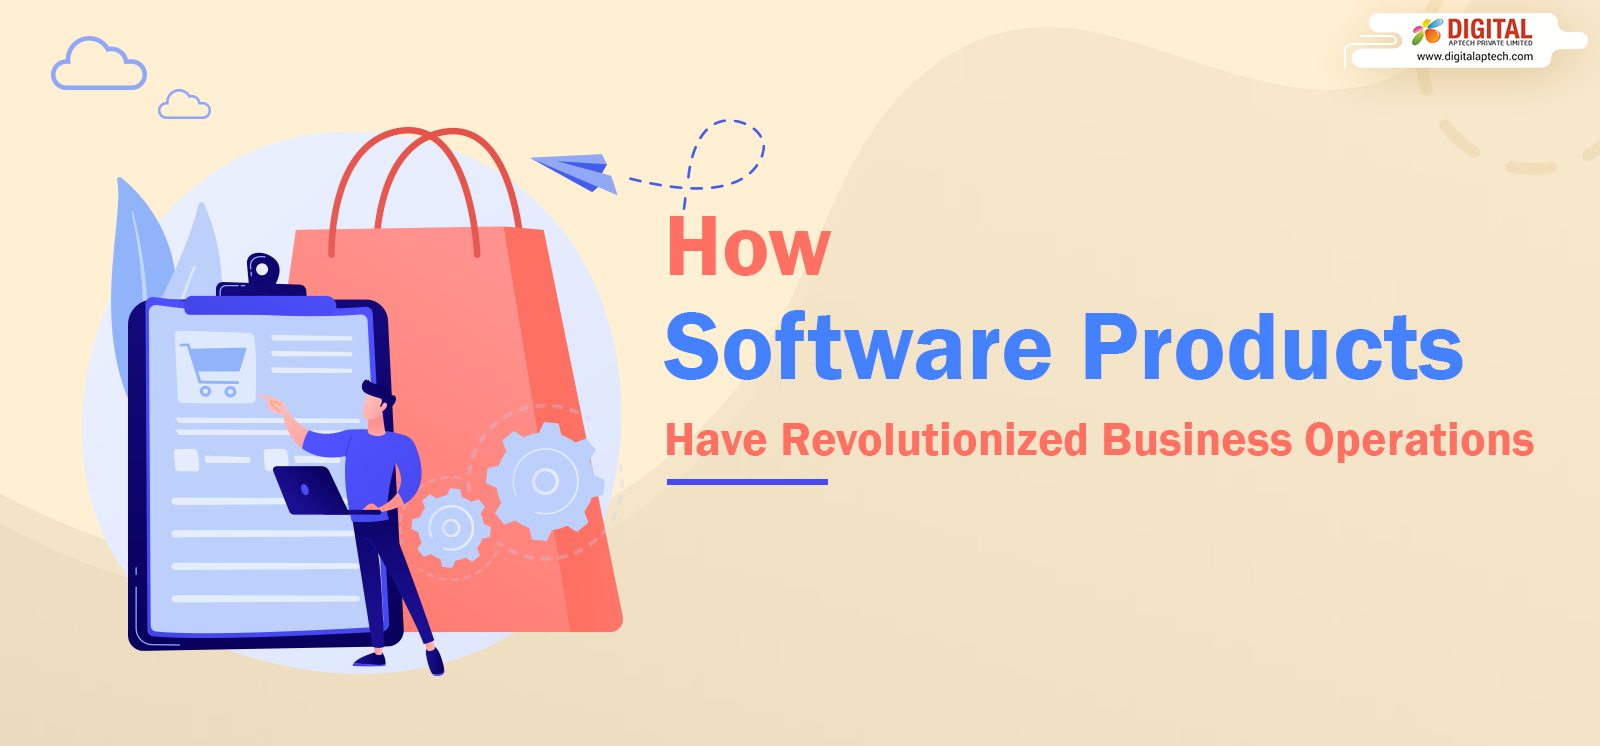 How Software Products Have Revolutionized Business Operations